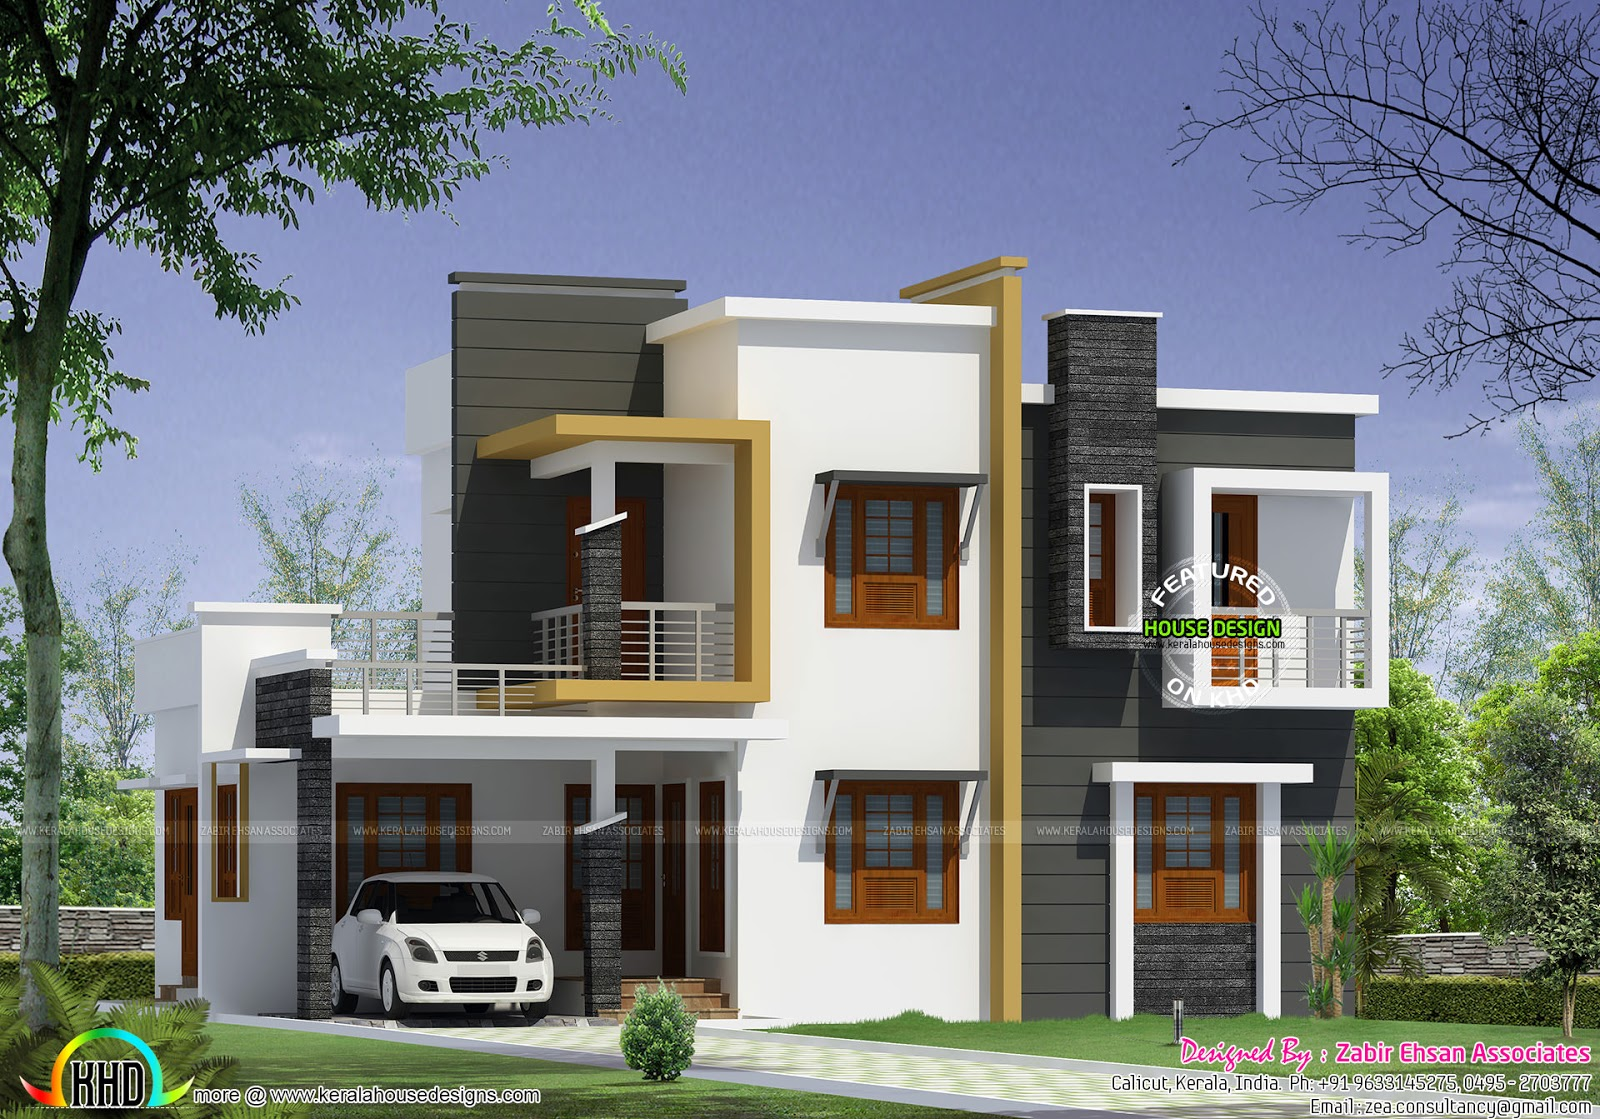 Box type modern house plan kerala home design and floor for Contemporary homes floor plans